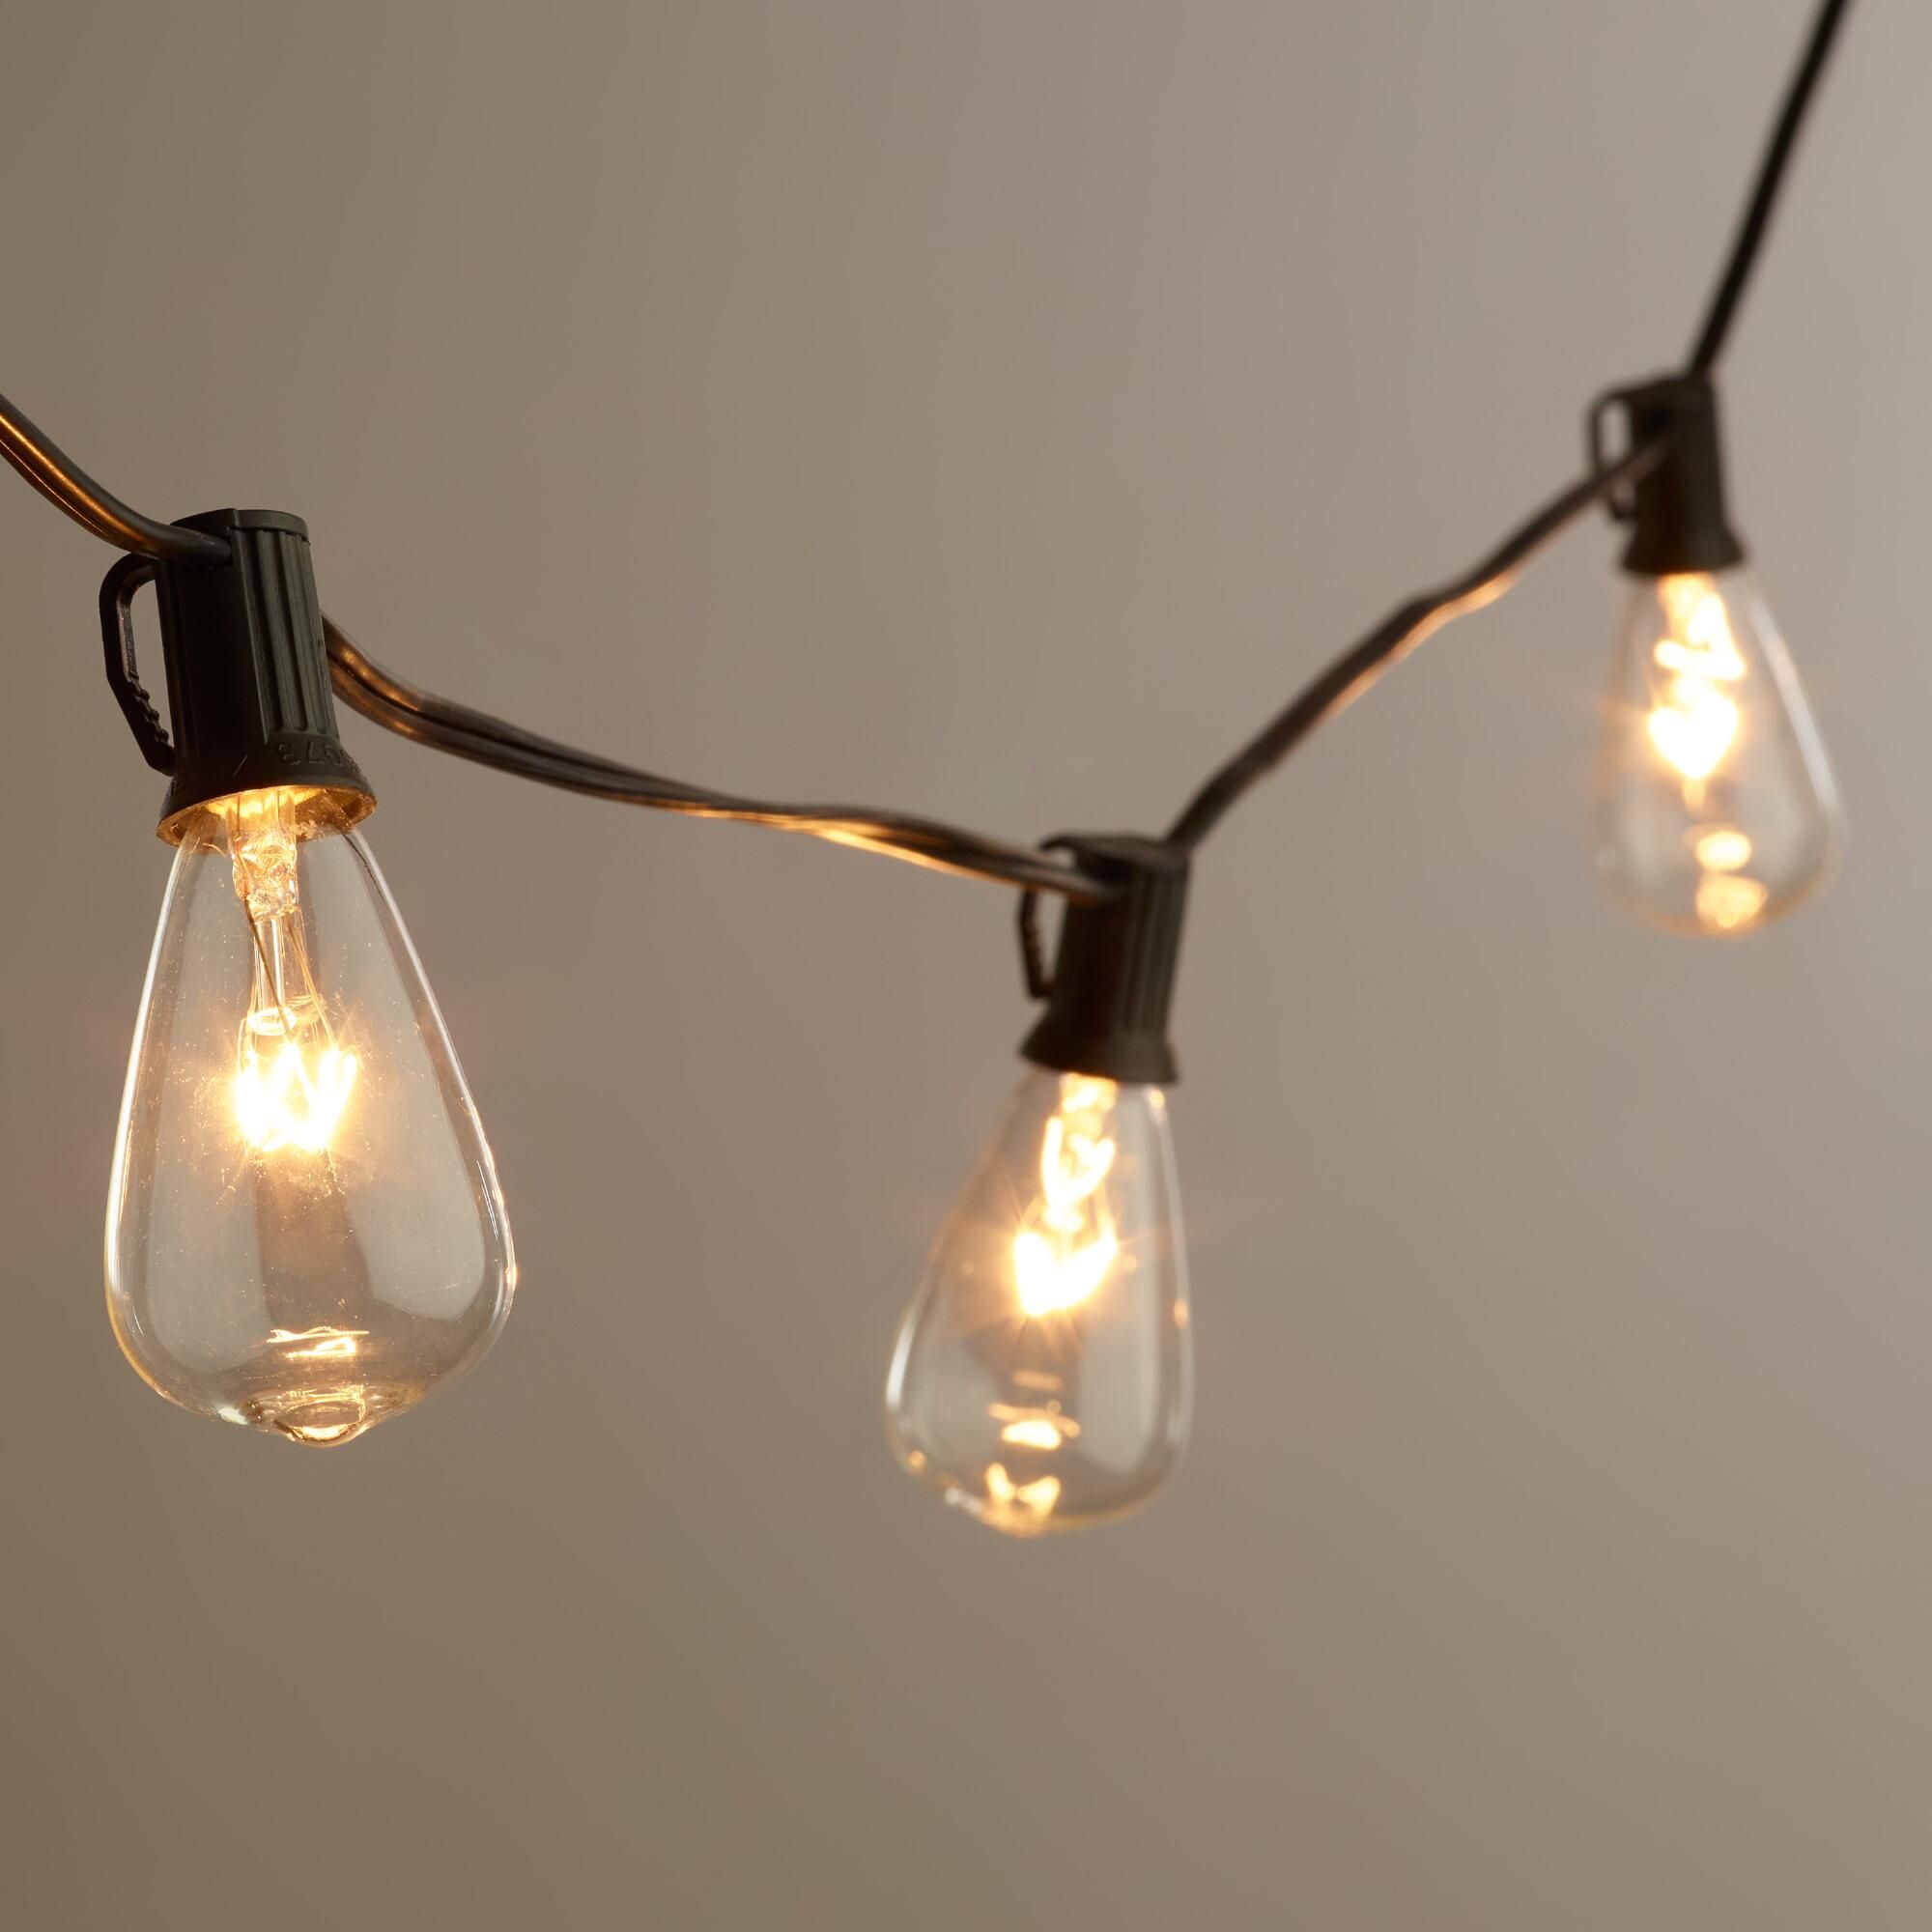 Inspired by the vintage light bulbs invented by Thomas Edison our